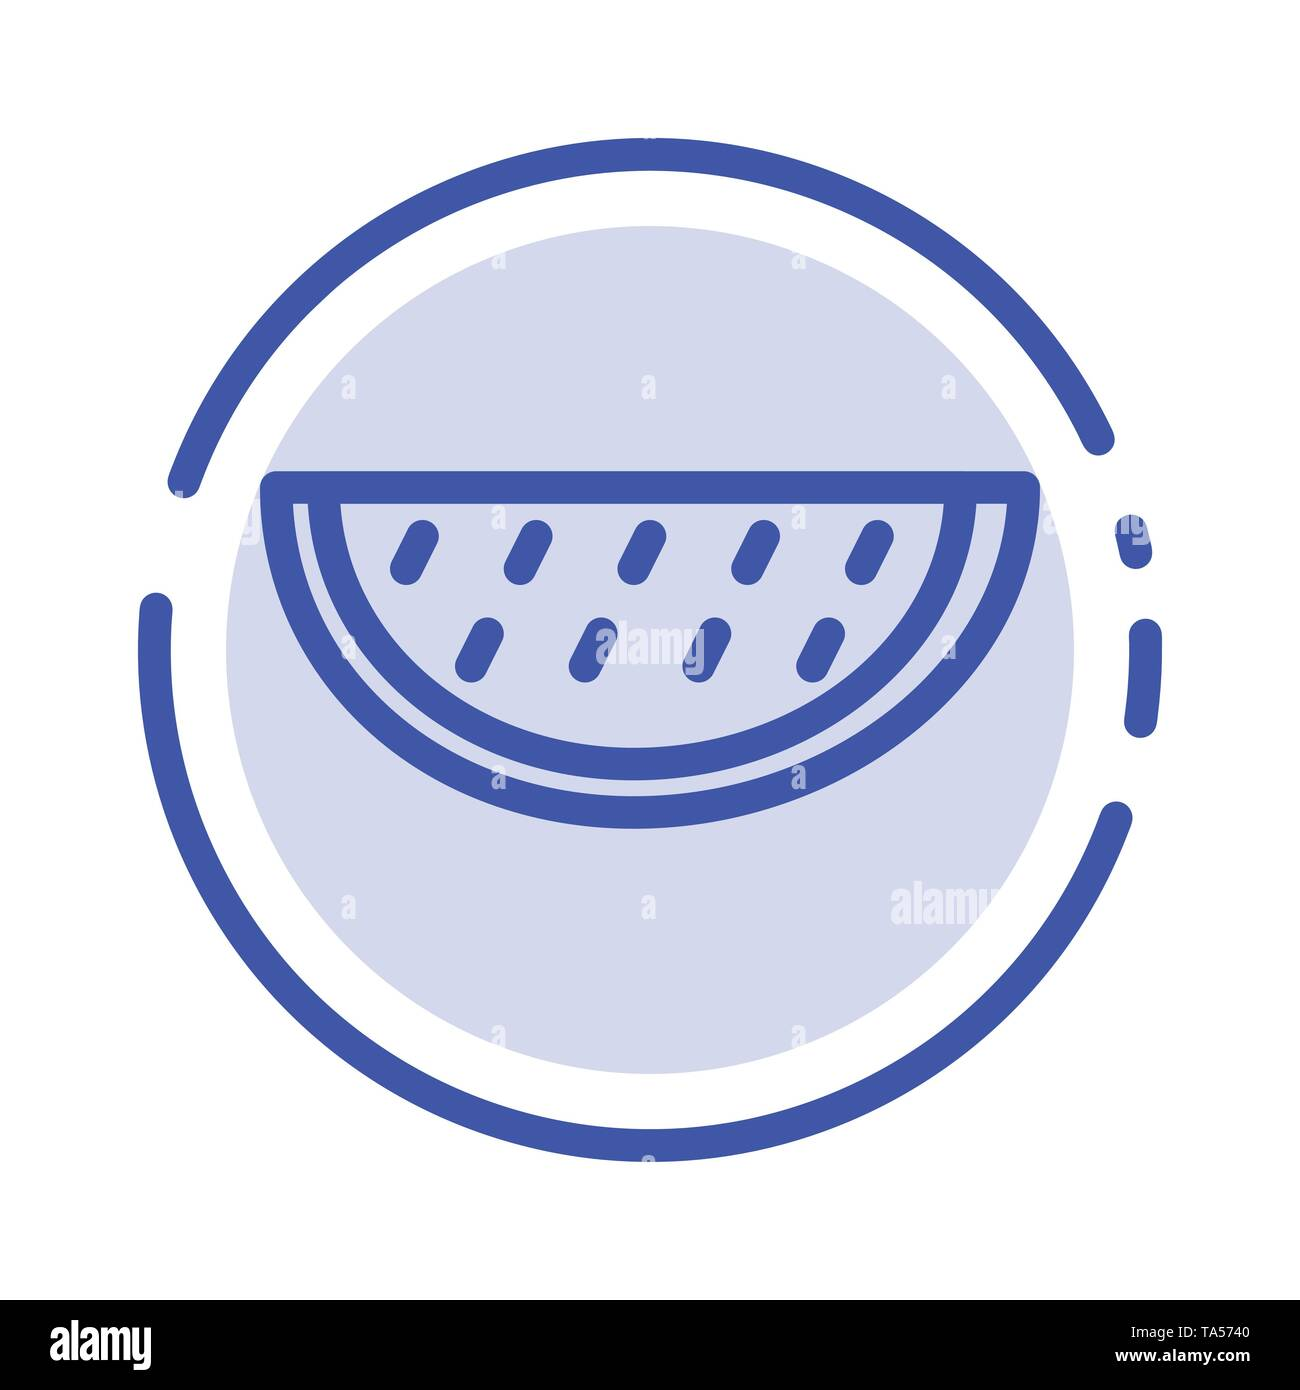 Fruits, Melon, Summer, Water Blue Dotted Line Line Icon - Stock Image